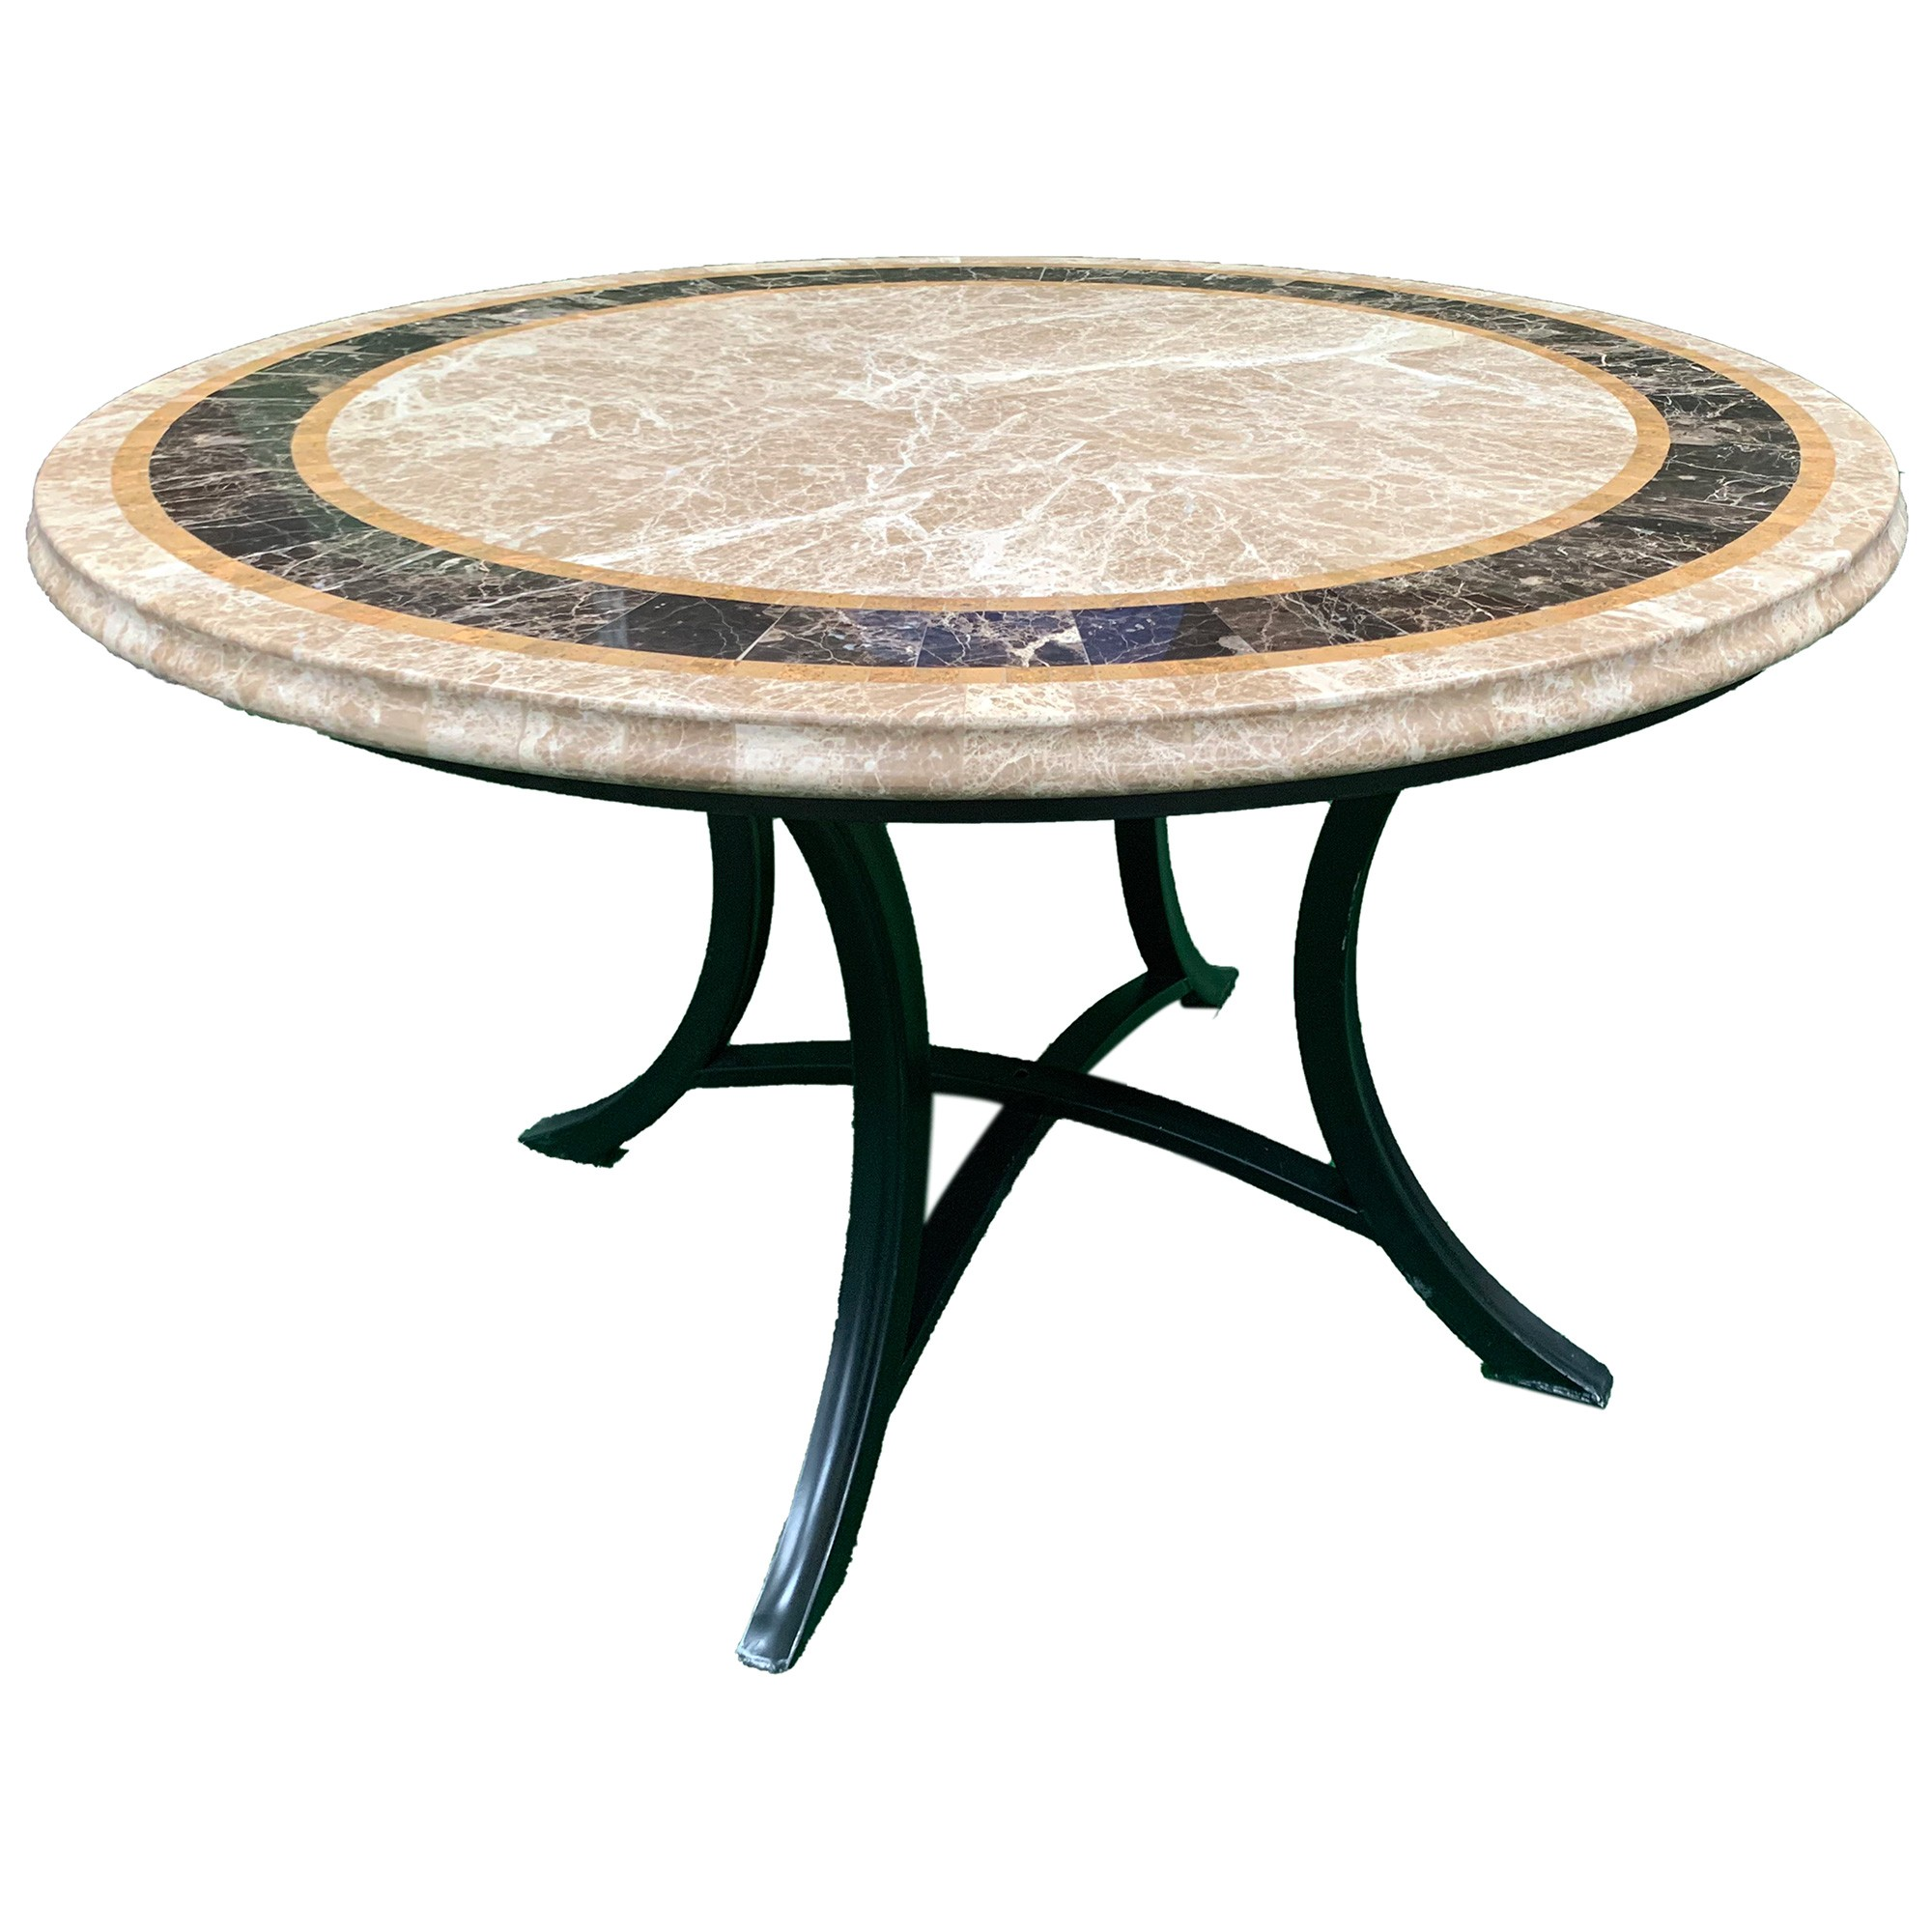 Saturn Marble Stone Round Outdoor Dining Table, 120cm